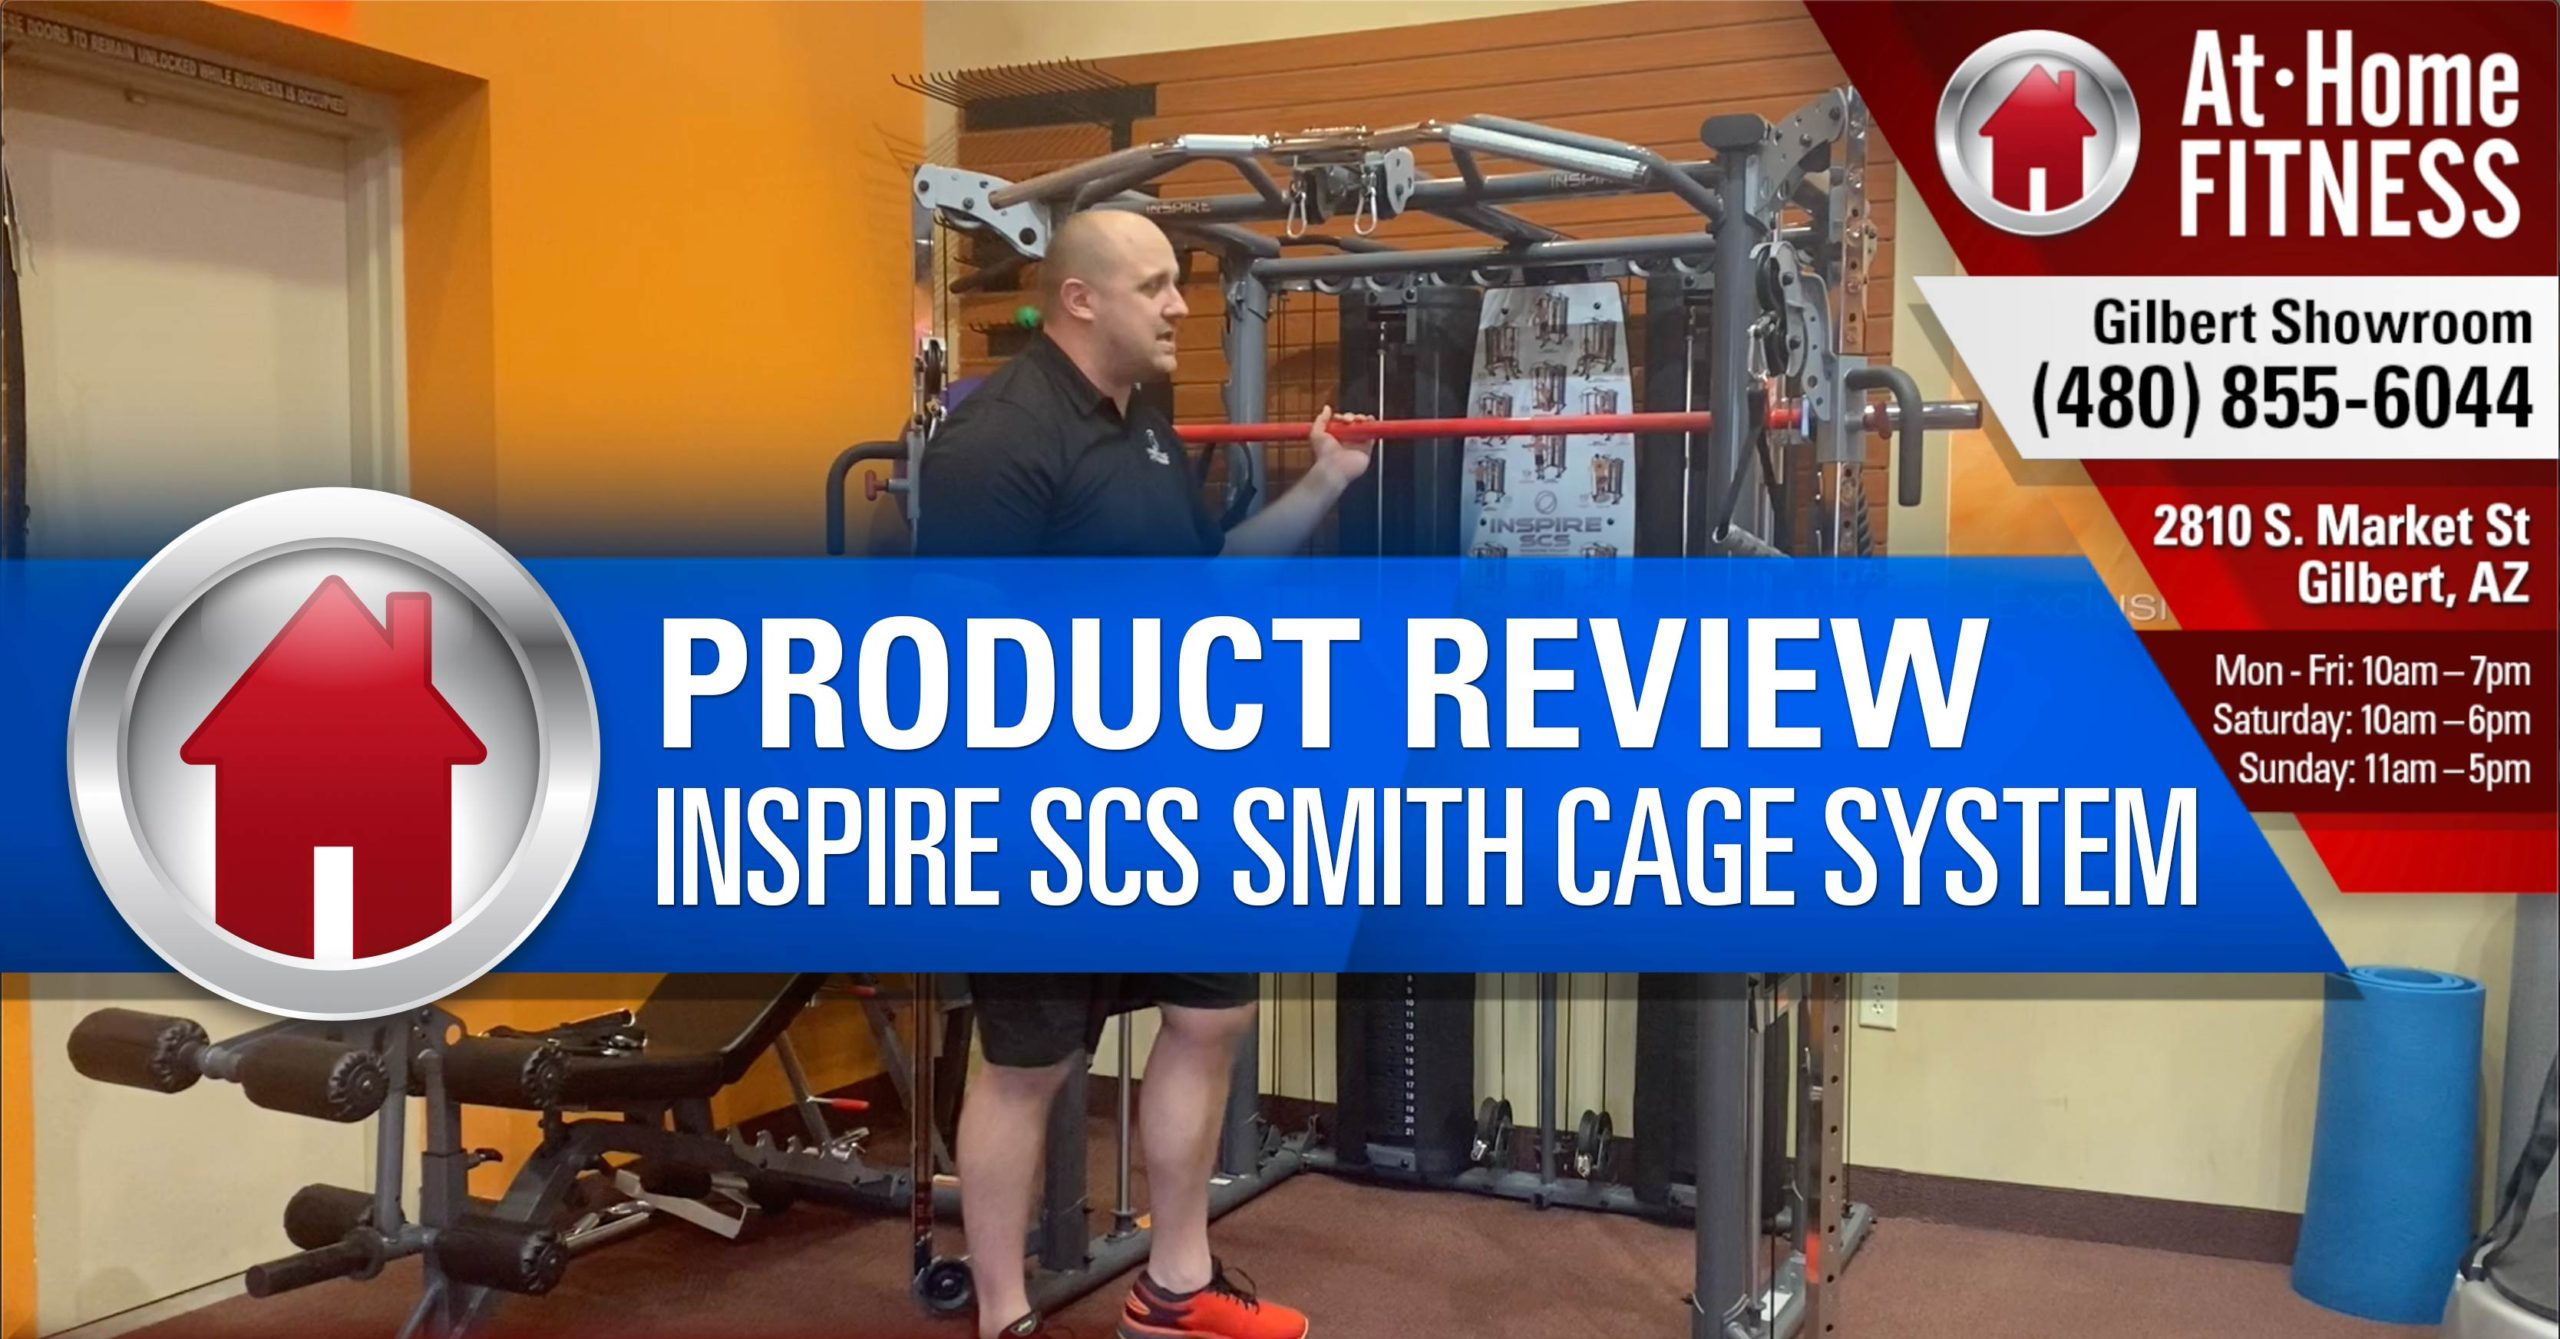 Inspire SCS Smith Cage System gives owners the ultimate home gym